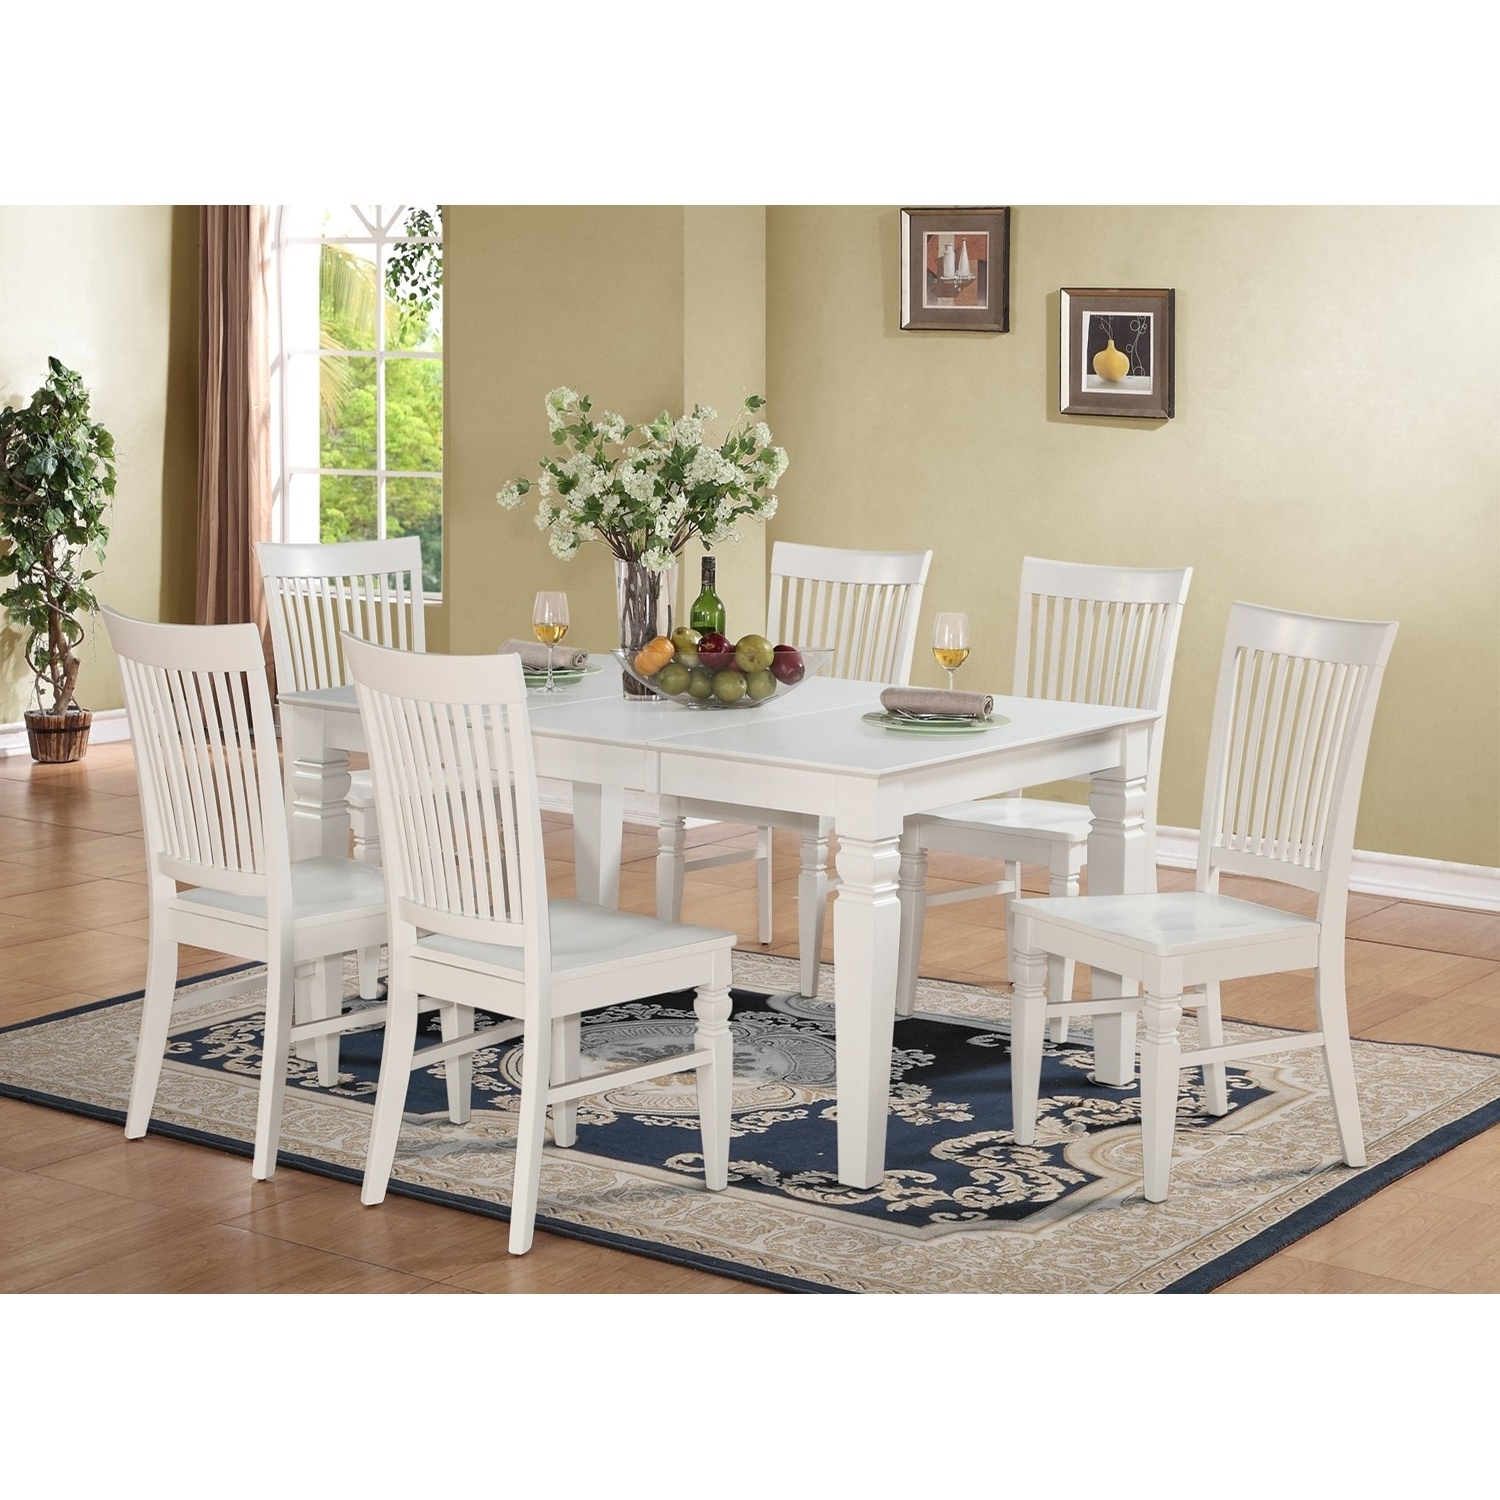 East West Furniture West7 Whi W – Weston 7 Piece White Dining Set Within Fashionable White Dining Sets (View 8 of 25)